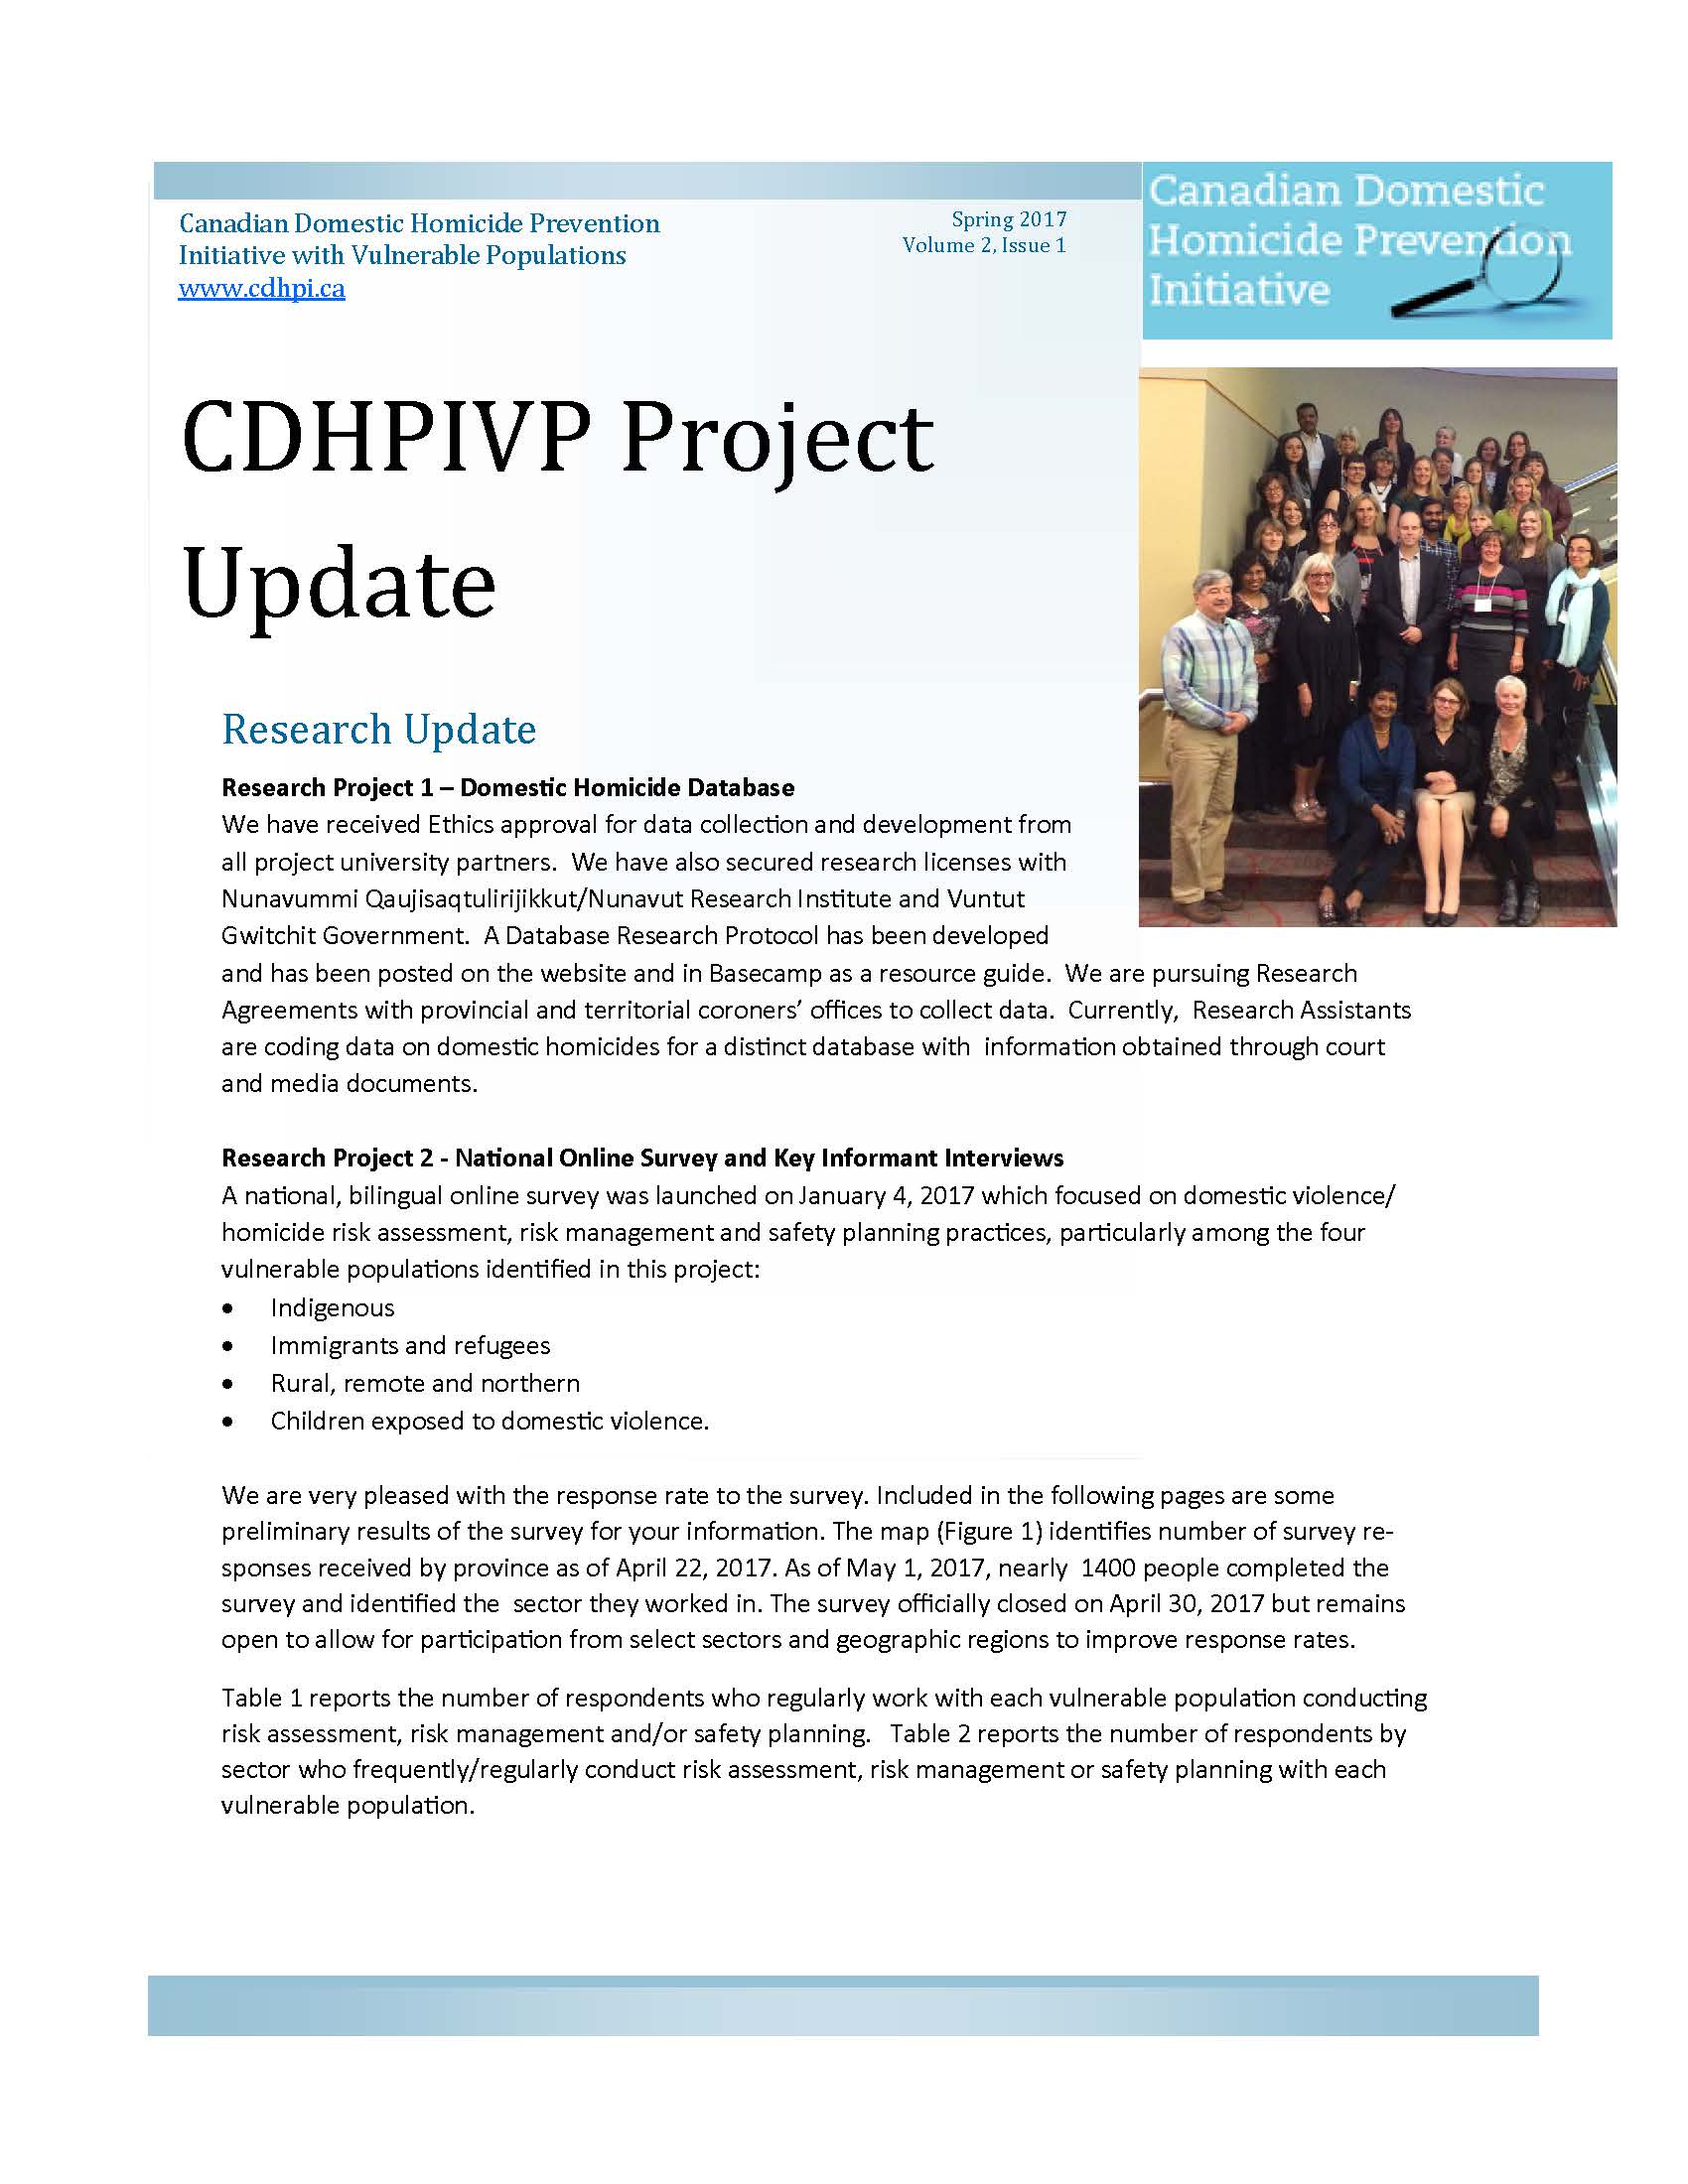 CDHPIVP Project Update: Volume 2, Newsletter 1 cover page